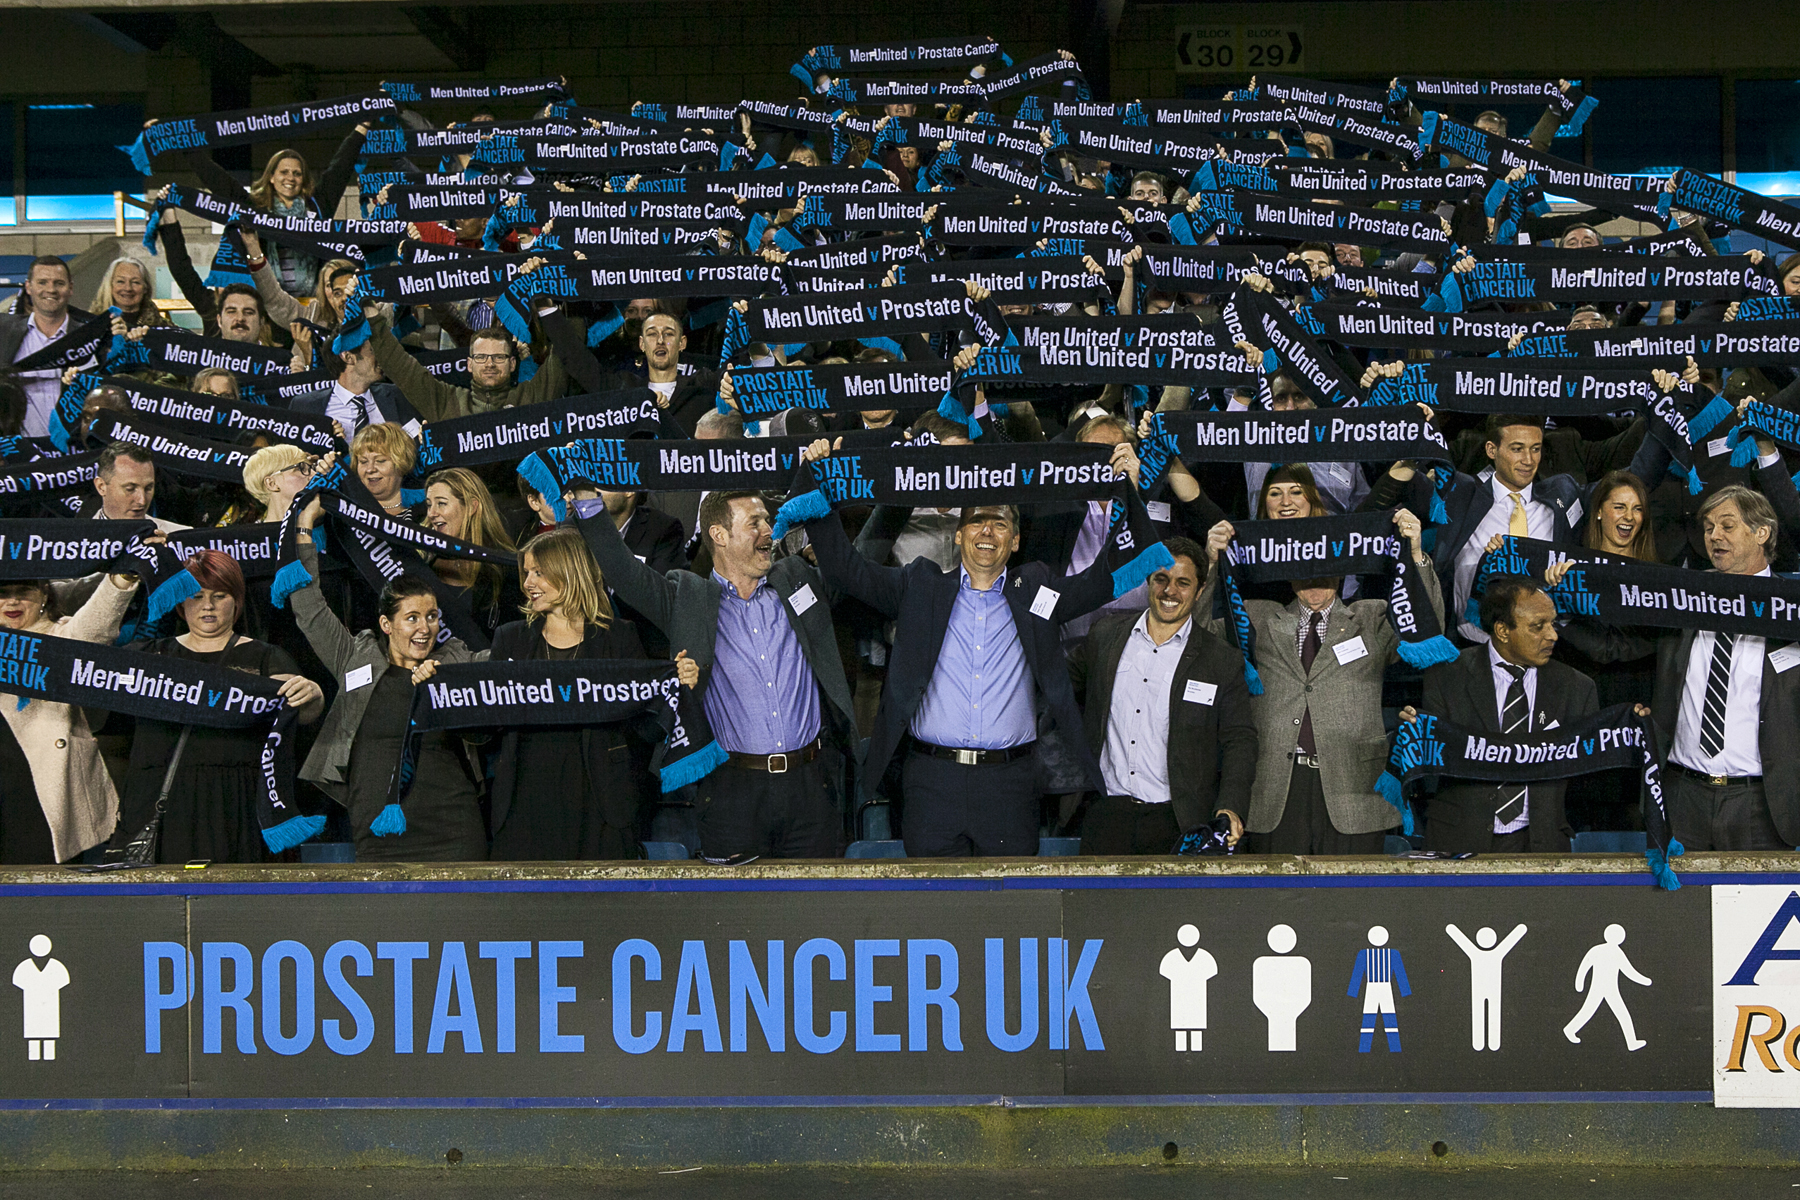 Prostate Cancer UK's Men United campaign is a good example of resourceful marketing